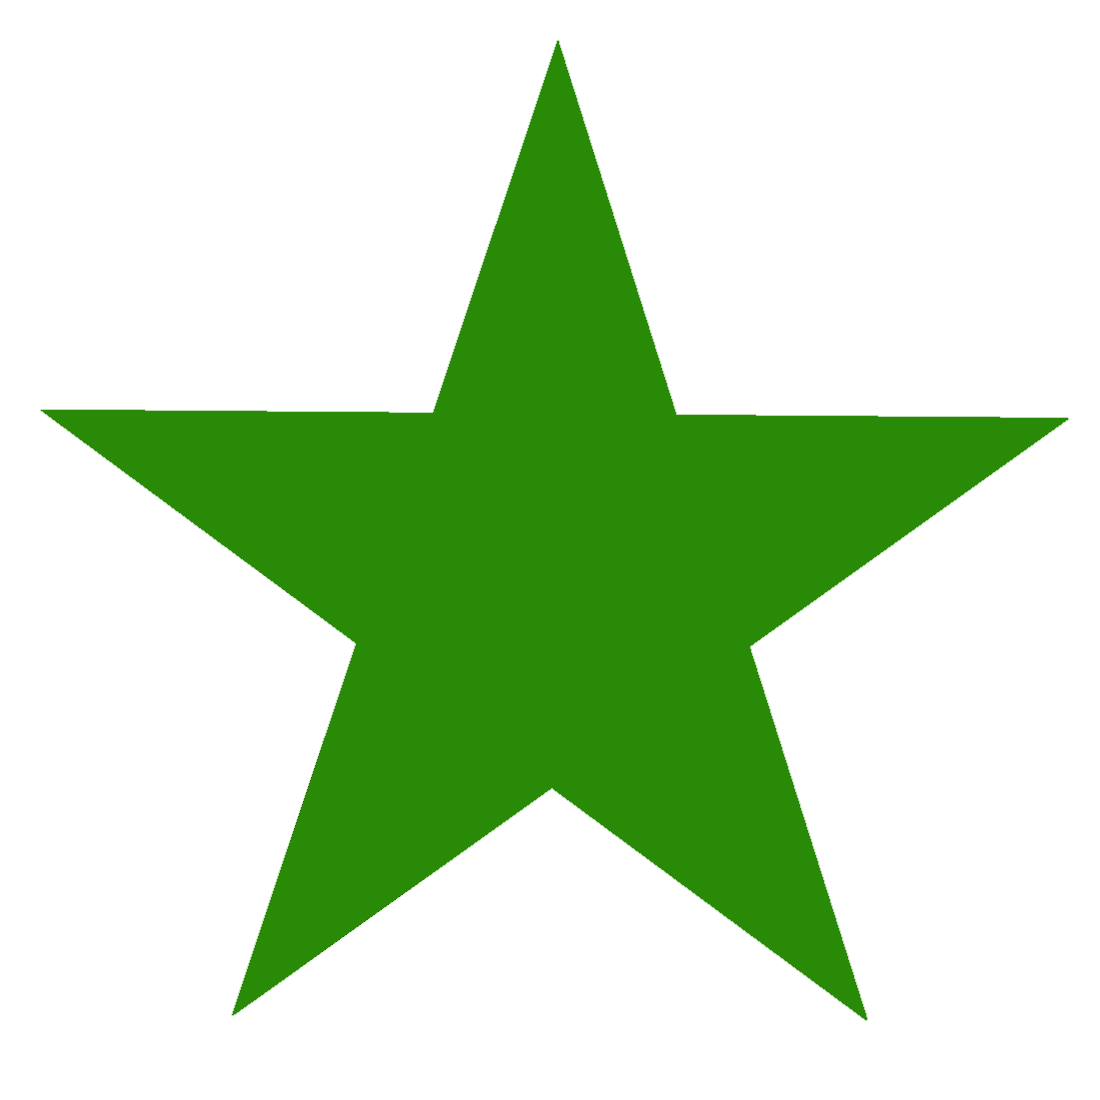 Green star clipart image transparent library Green Star PNG Image - PurePNG | Free transparent CC0 PNG Image Library image transparent library